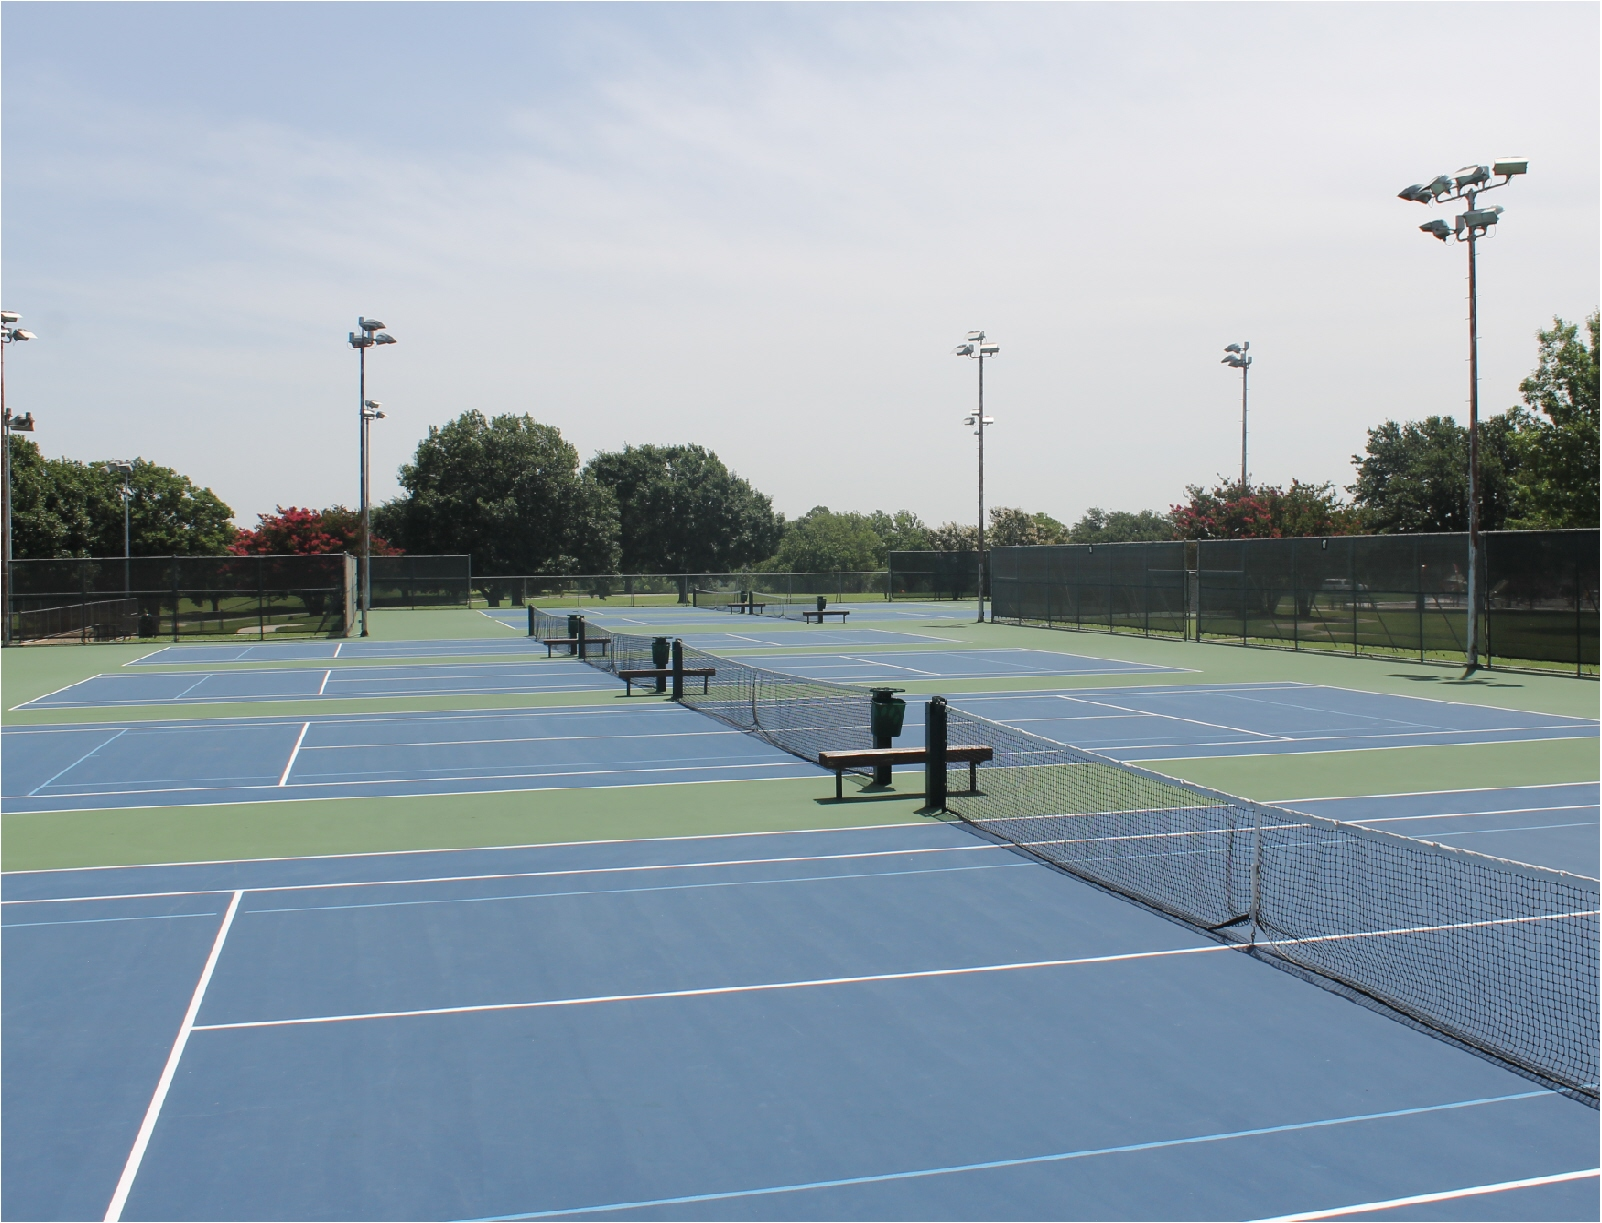 Tennis Centers | Dallas Parks, TX - Official Website